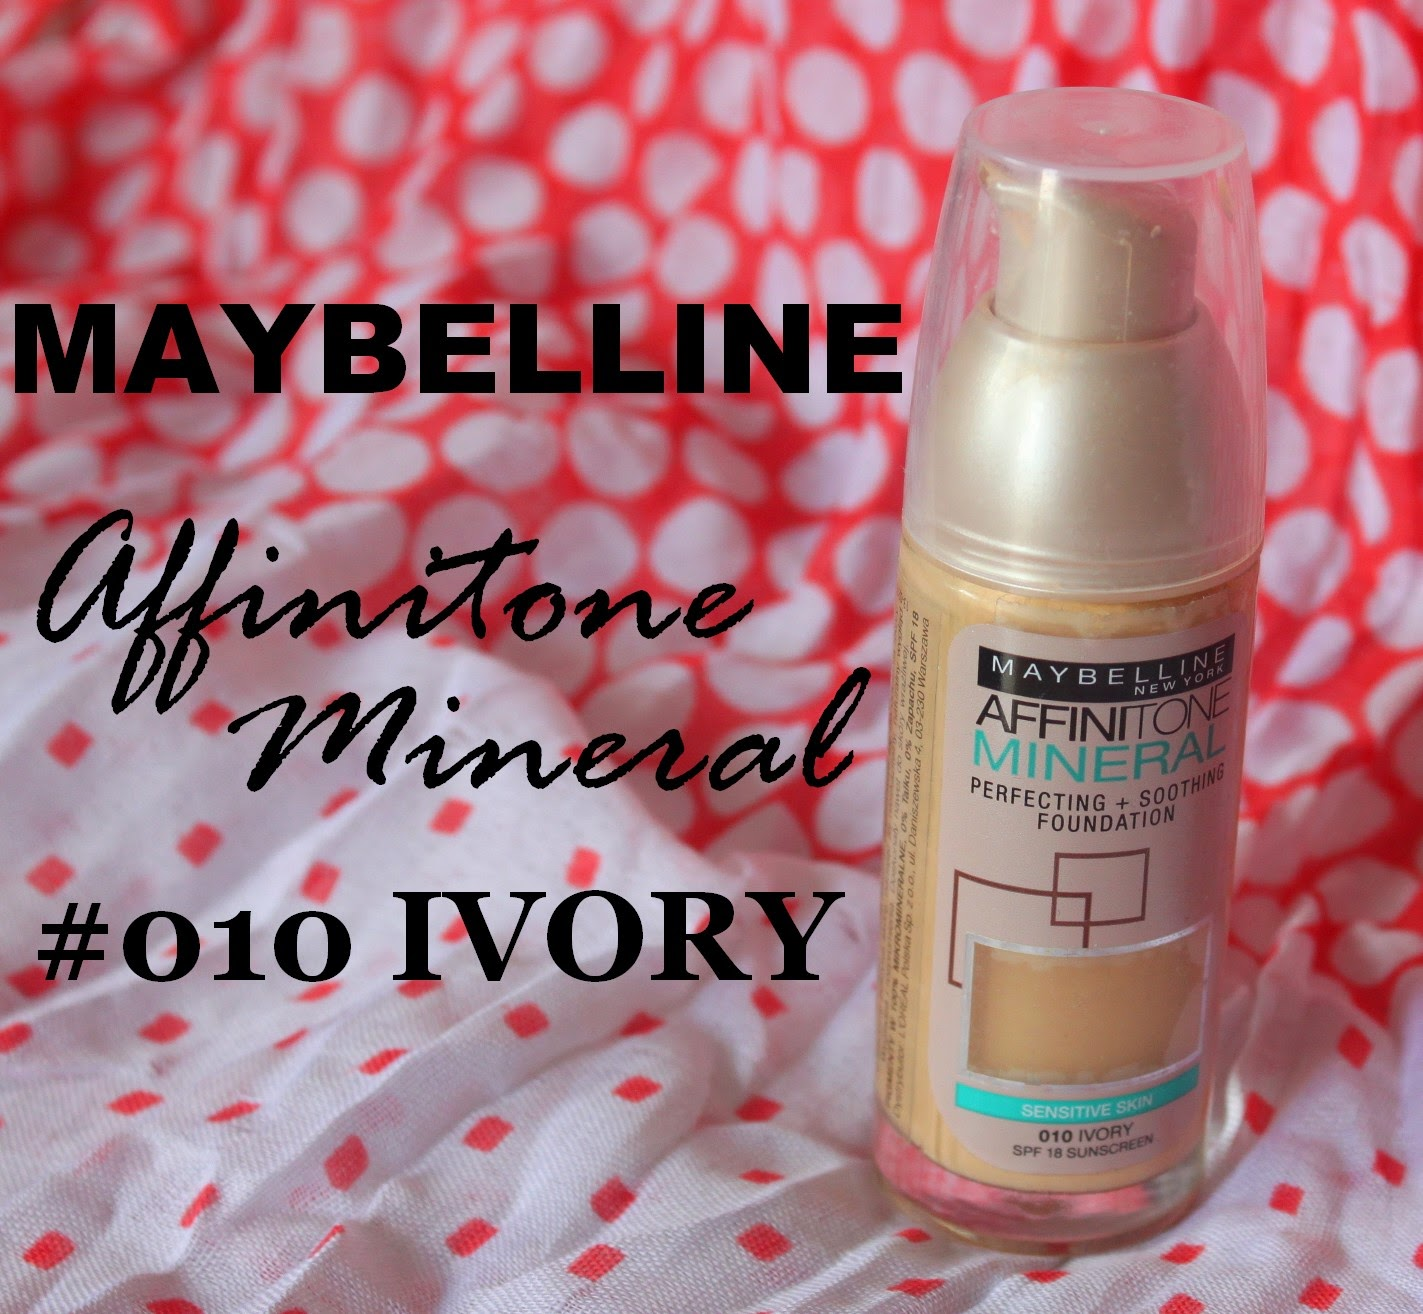 MAYBELLINE Affinitone Mineral, #010 IVORY